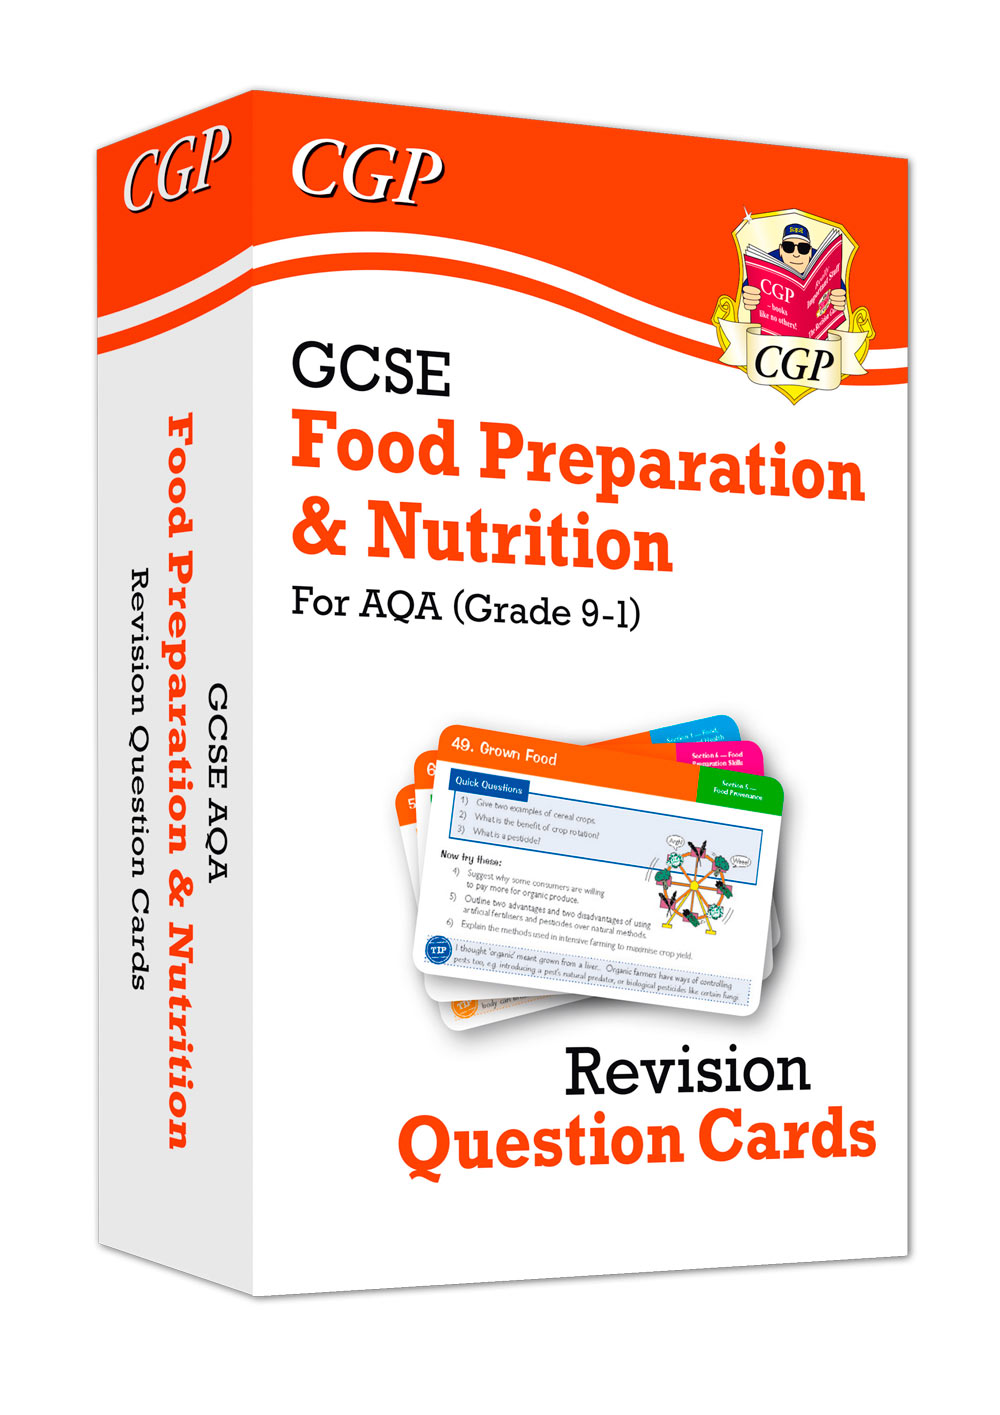 FNAF41 - New Grade 9-1 GCSE Food Preparation & Nutrition AQA Revision Question Cards